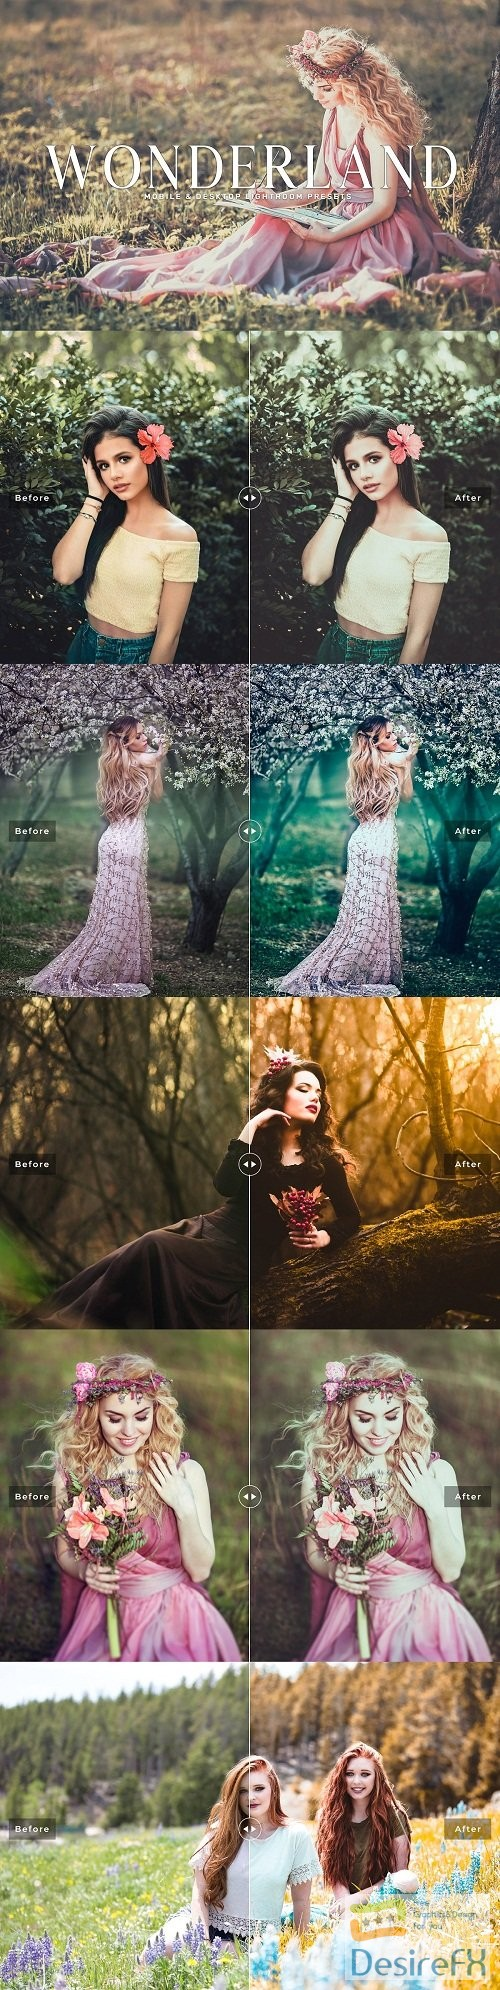 photoshop - Wonderland Lightroom Presets Pack - 3581806